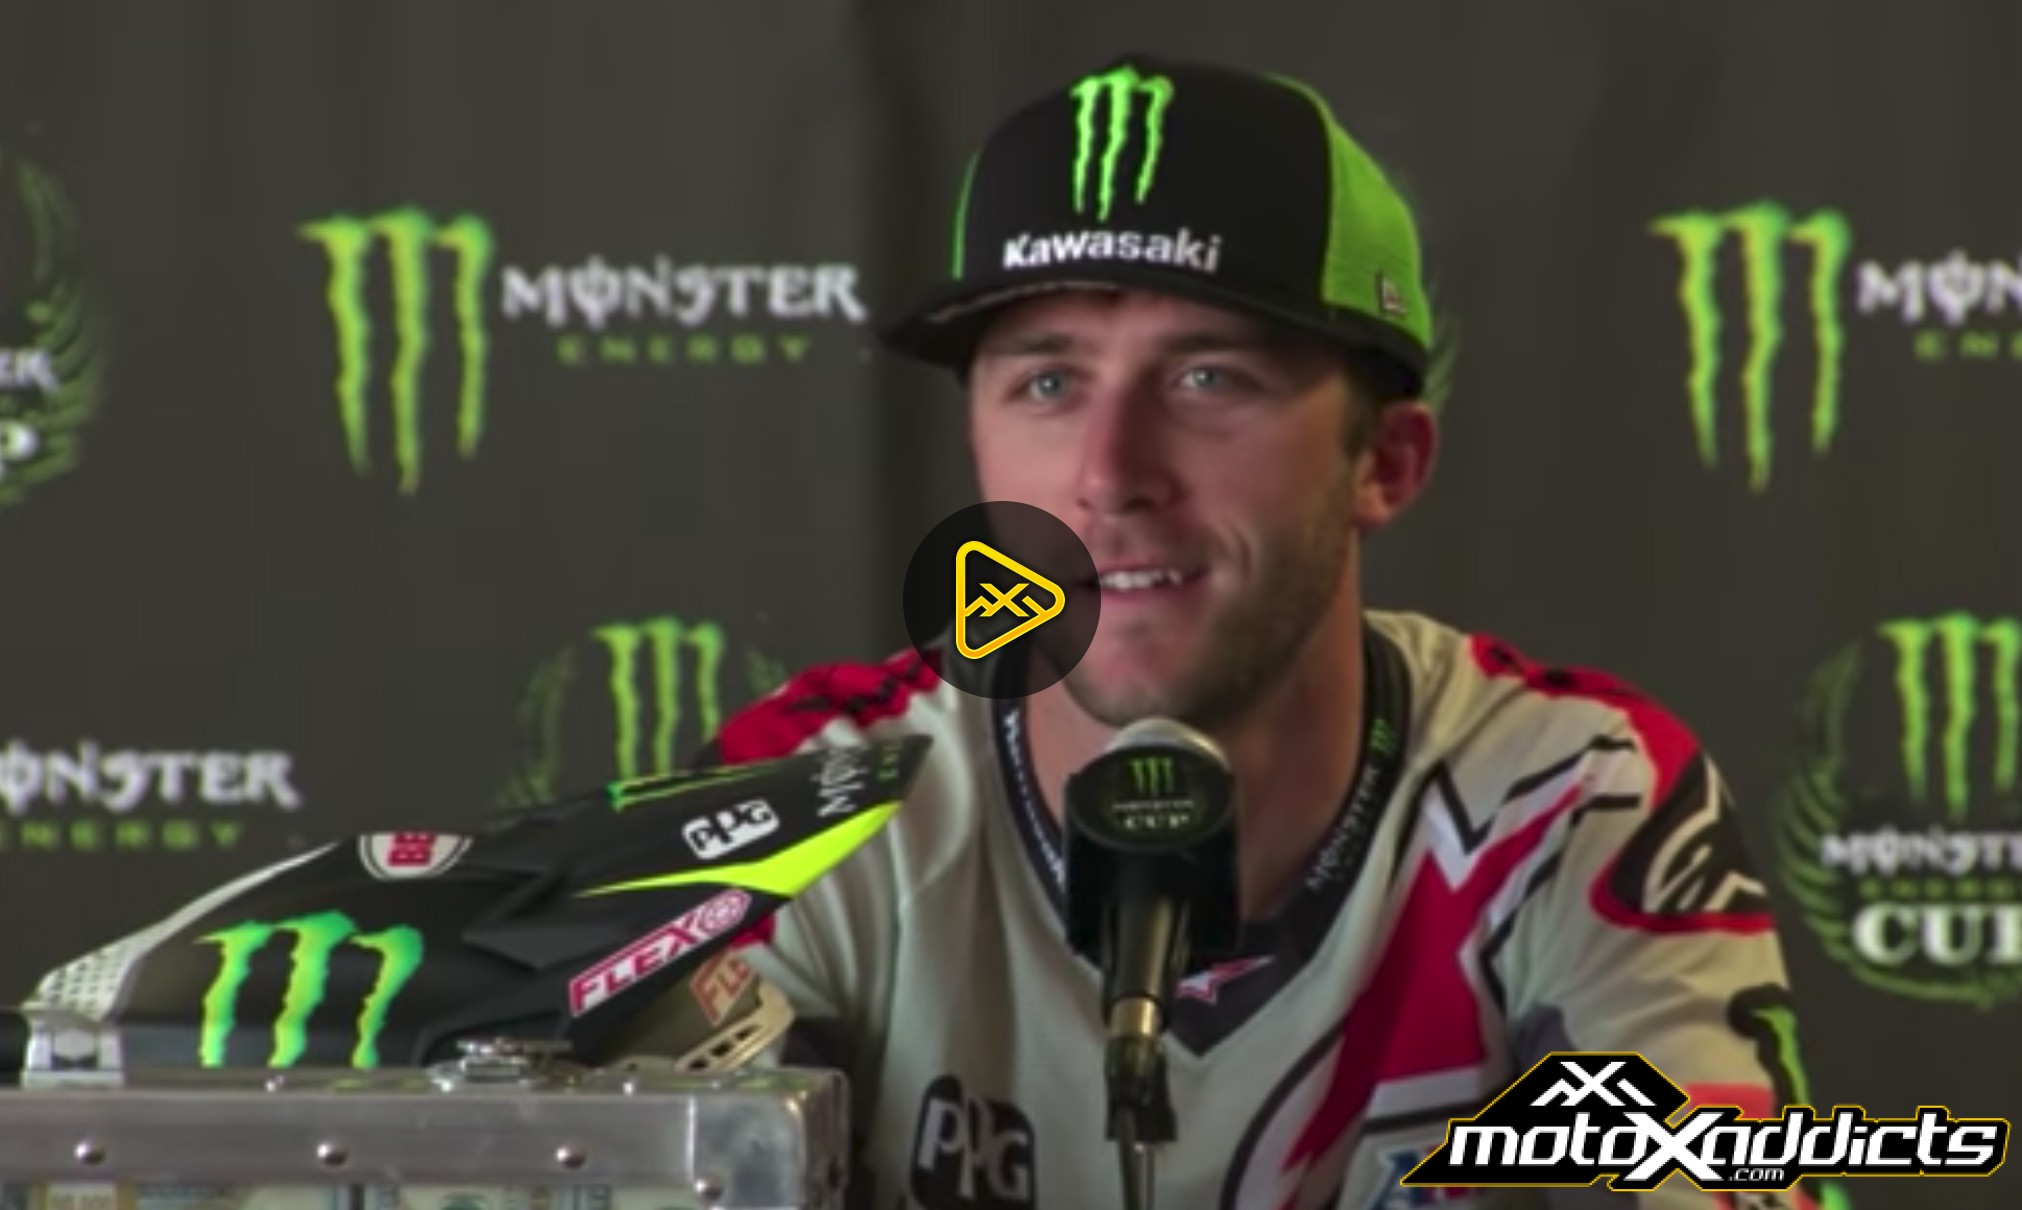 2017 – Monster Energy Cup – Tomac the one to beat?